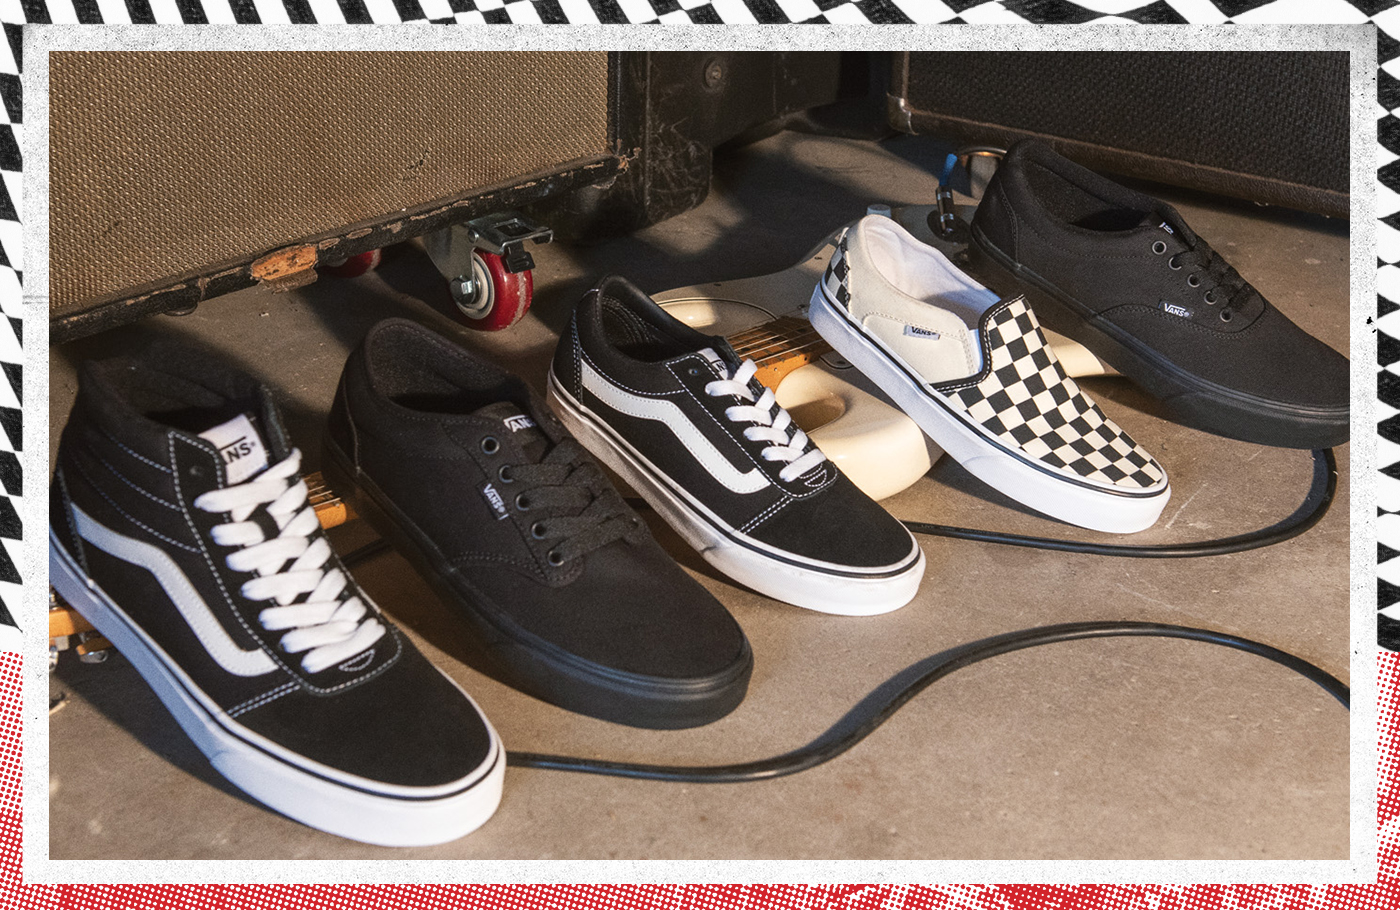 stylish assortment of cool vans